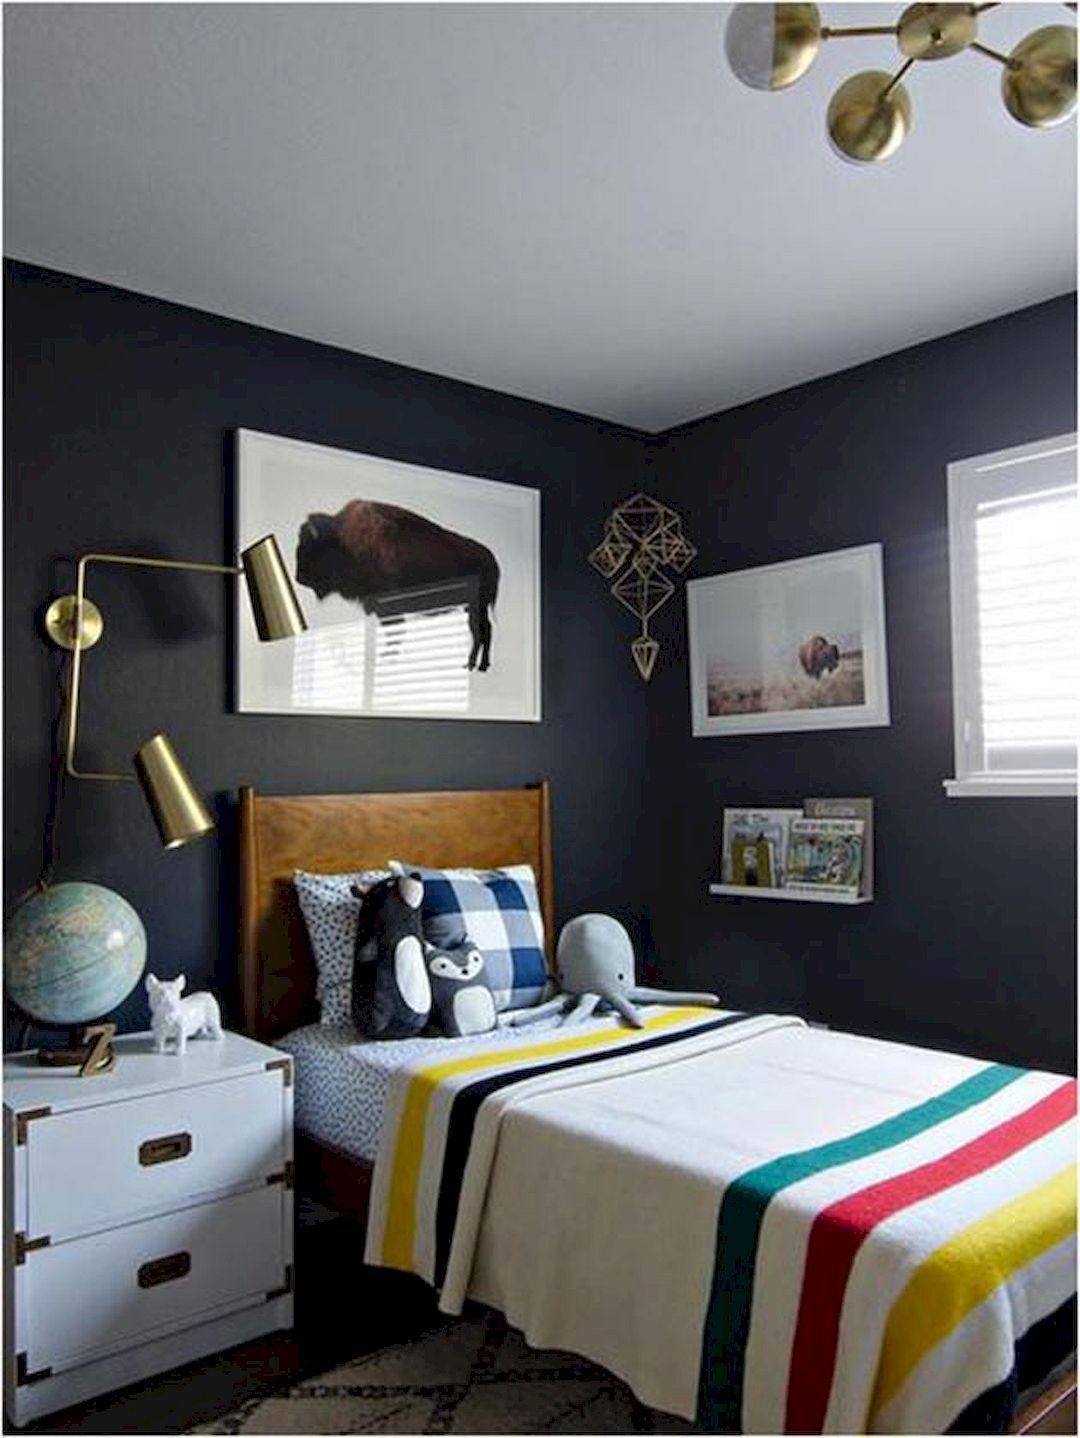 Bedroom Ideas With Dark Blue Carpet: 16 Neat Single Bedroom Designs